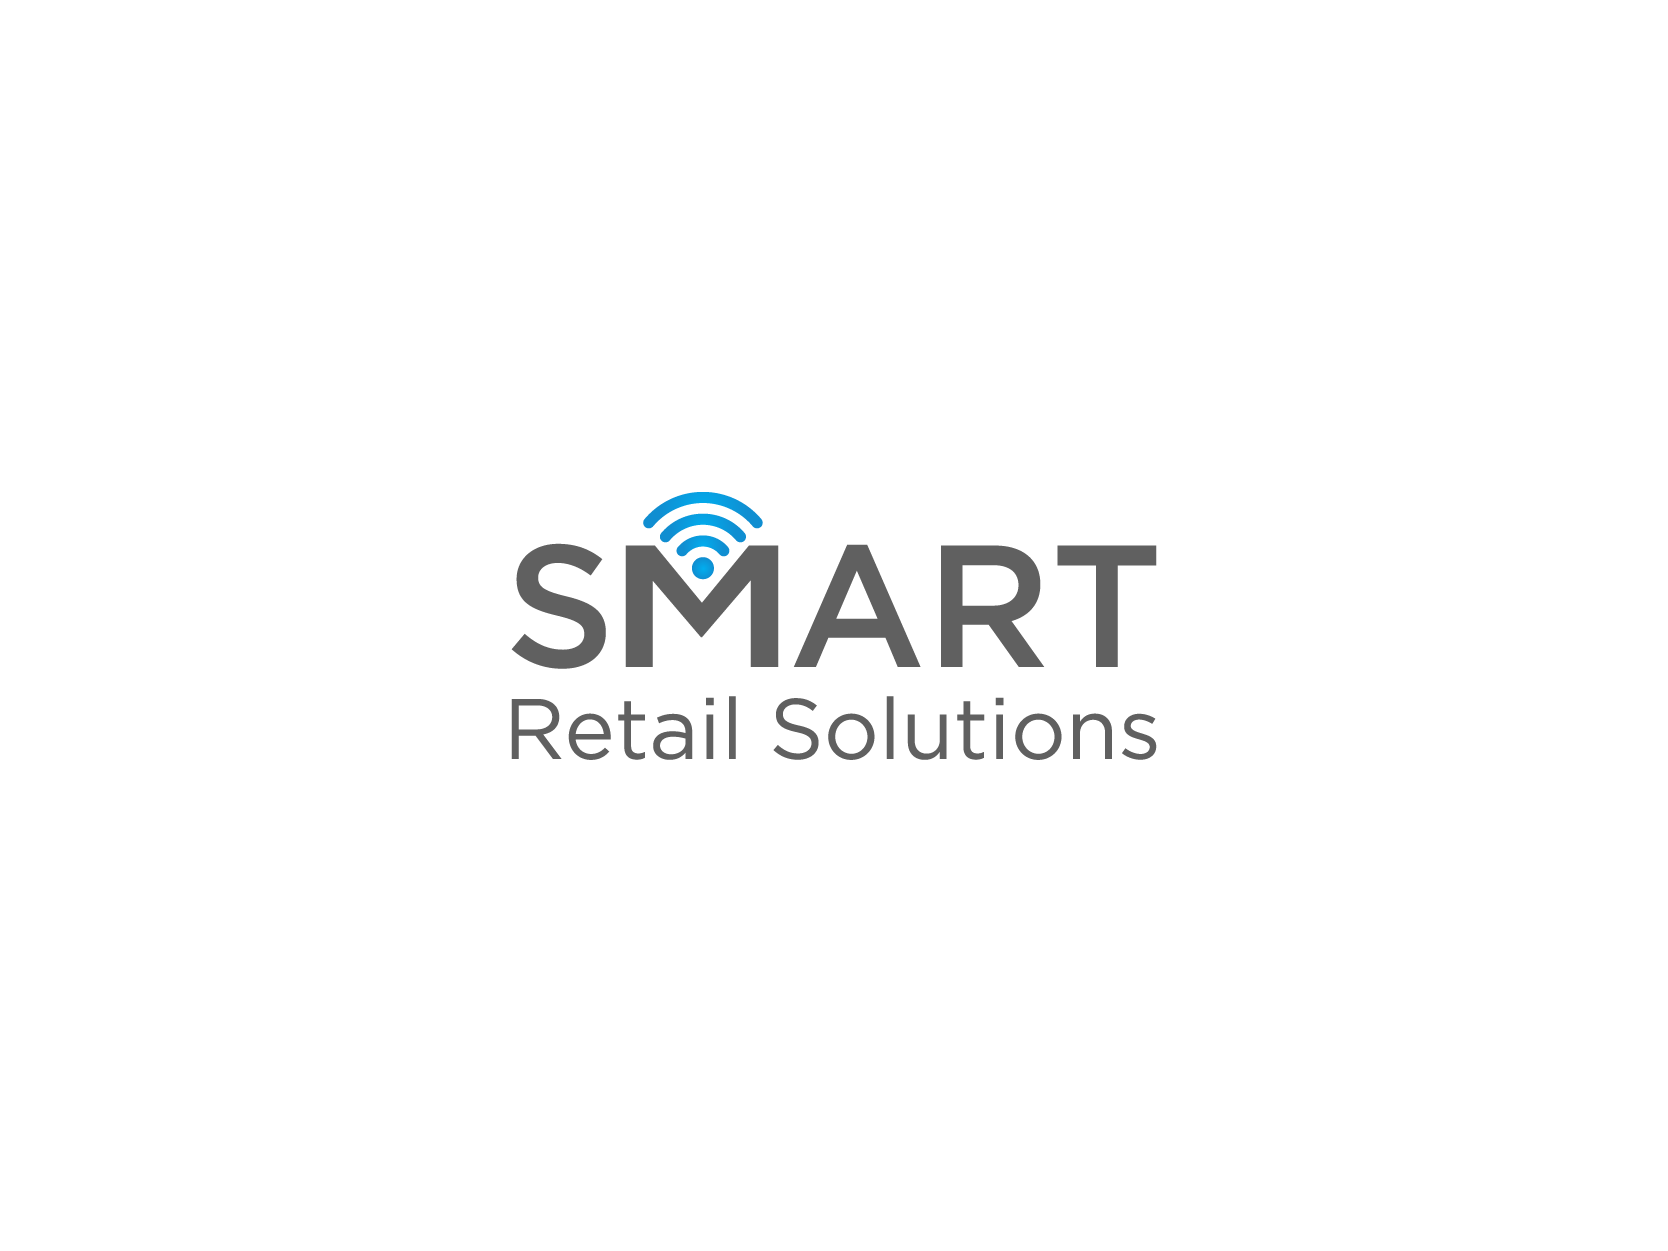 SMART Retail Solutions Logo Design